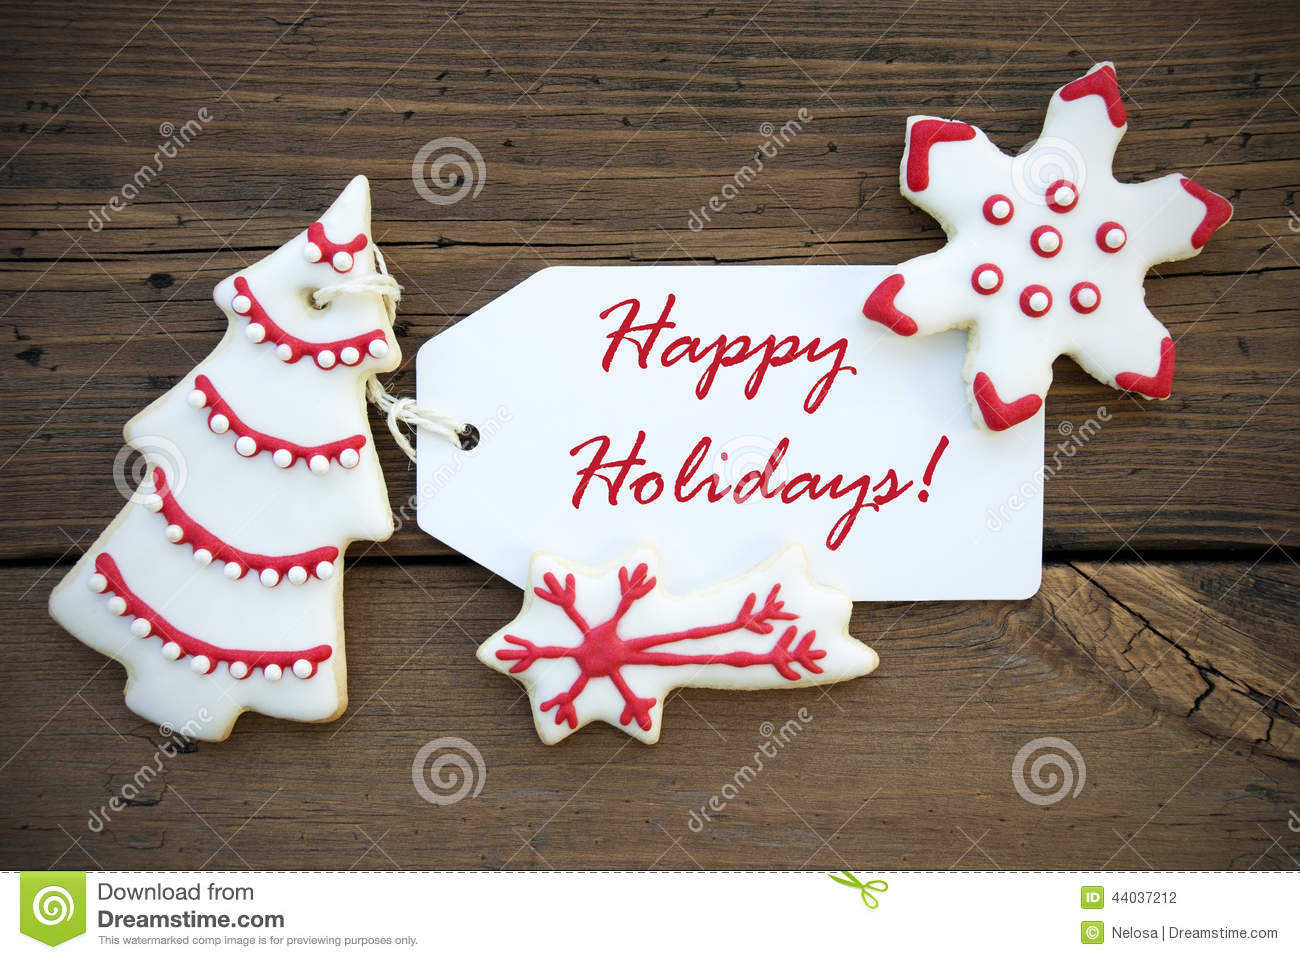 Red white winter background with happy holiday greetings stock photo download red white winter background with happy holiday greetings stock photo image of cookies m4hsunfo